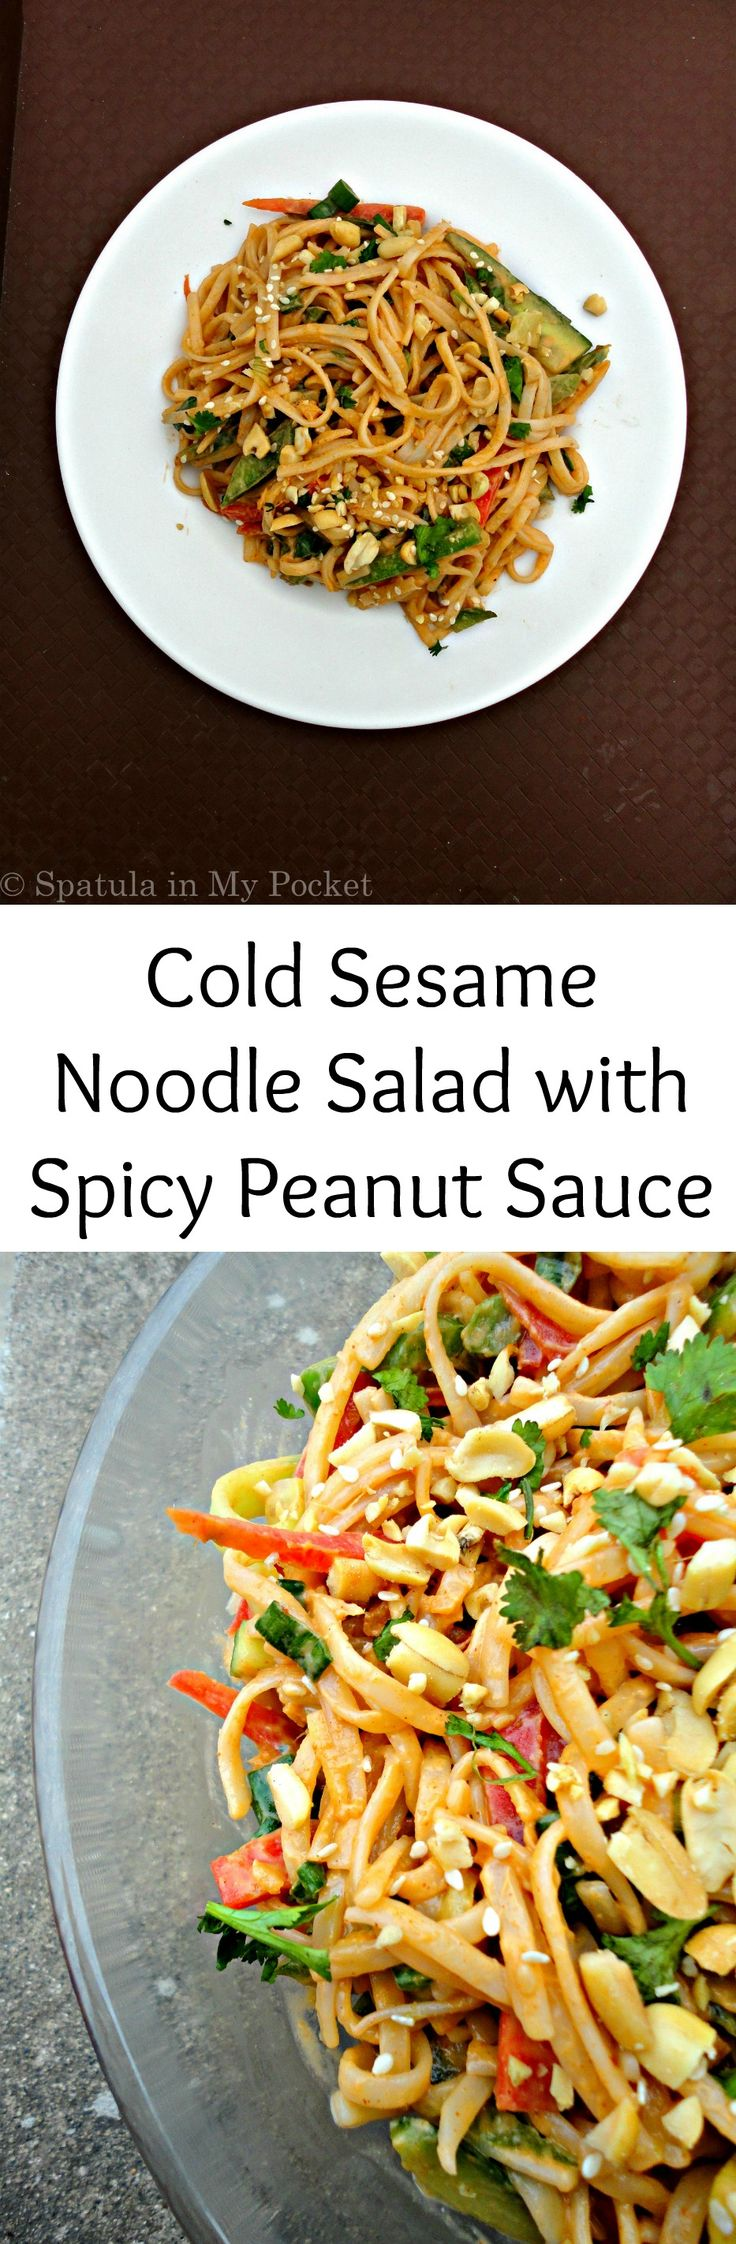 Cold Sesame Noodle Salad with Spicy Peanut Sauce. A simple clean recipe, but big on flavors.